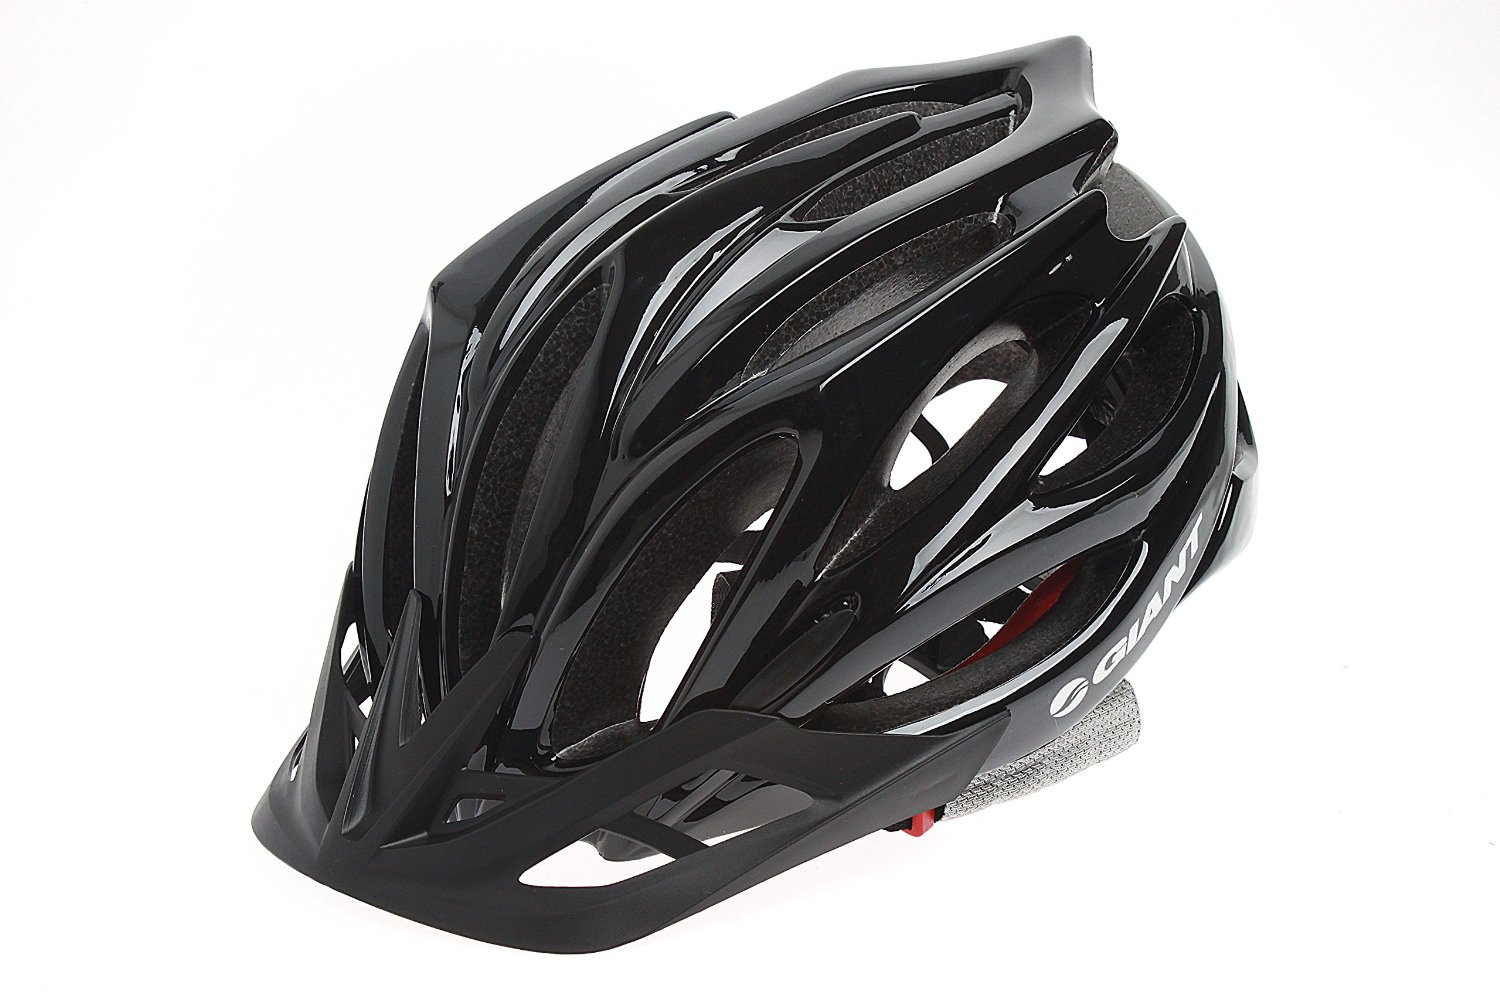 Black Giant Bicycle Helmets